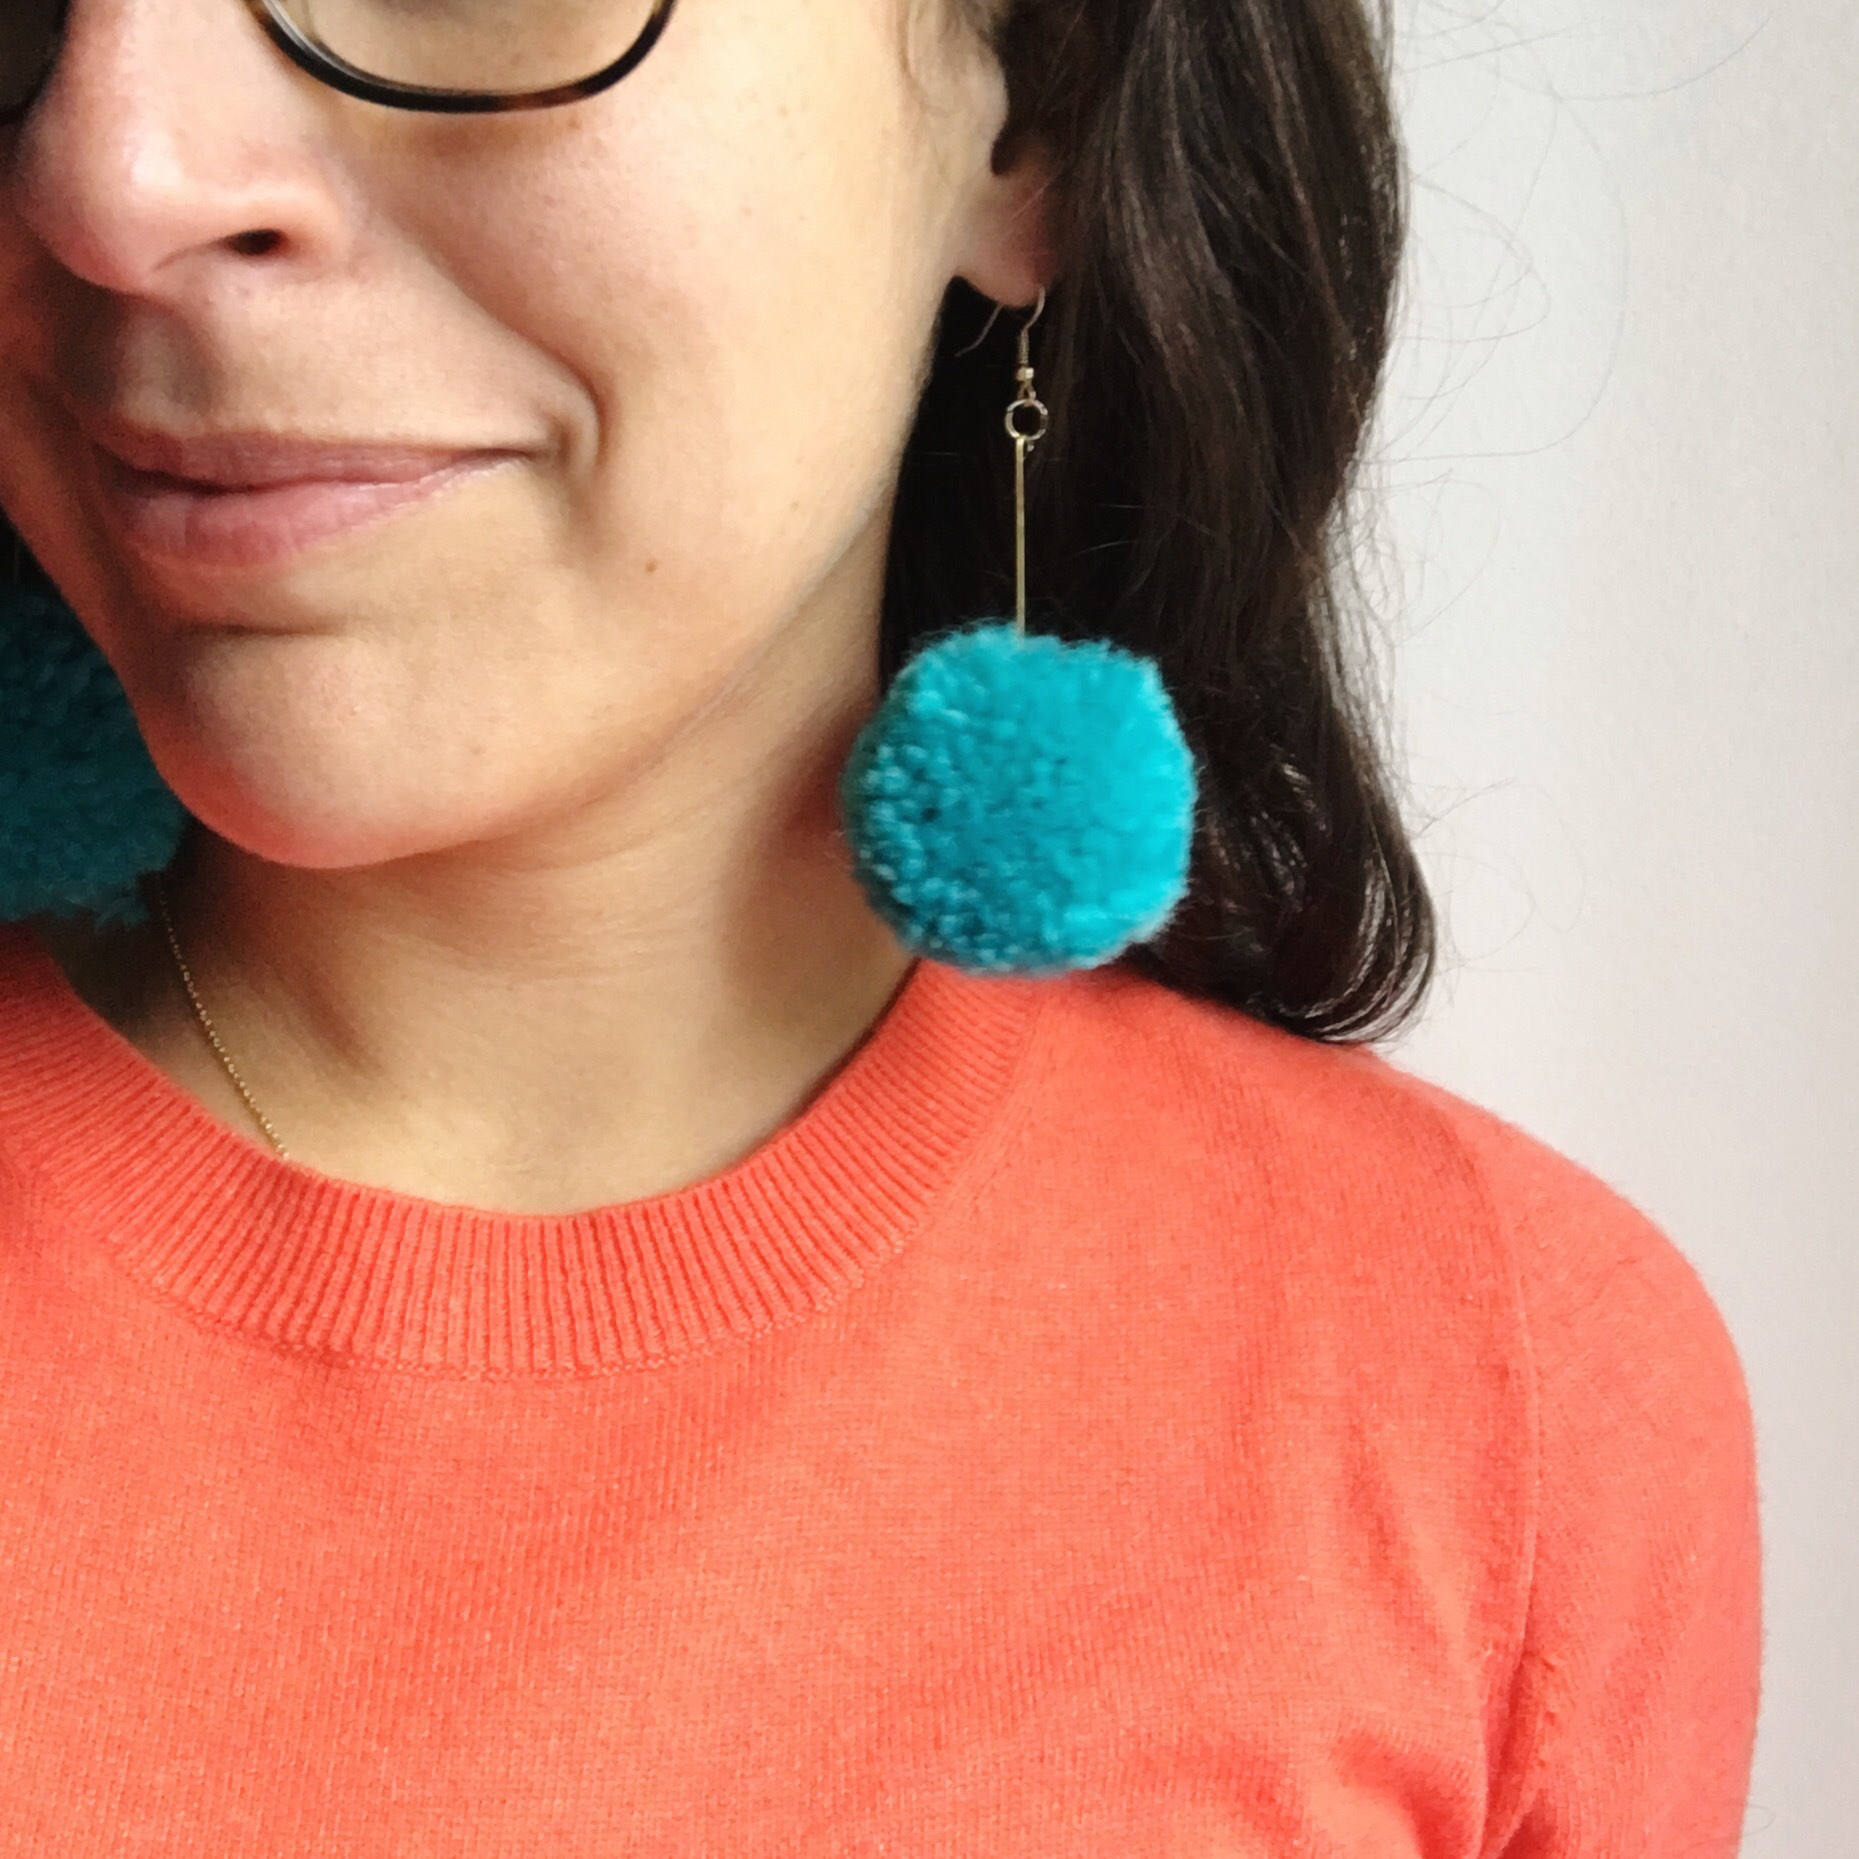 woman wearing an orange shirt and modeling bright teal pompom earrings